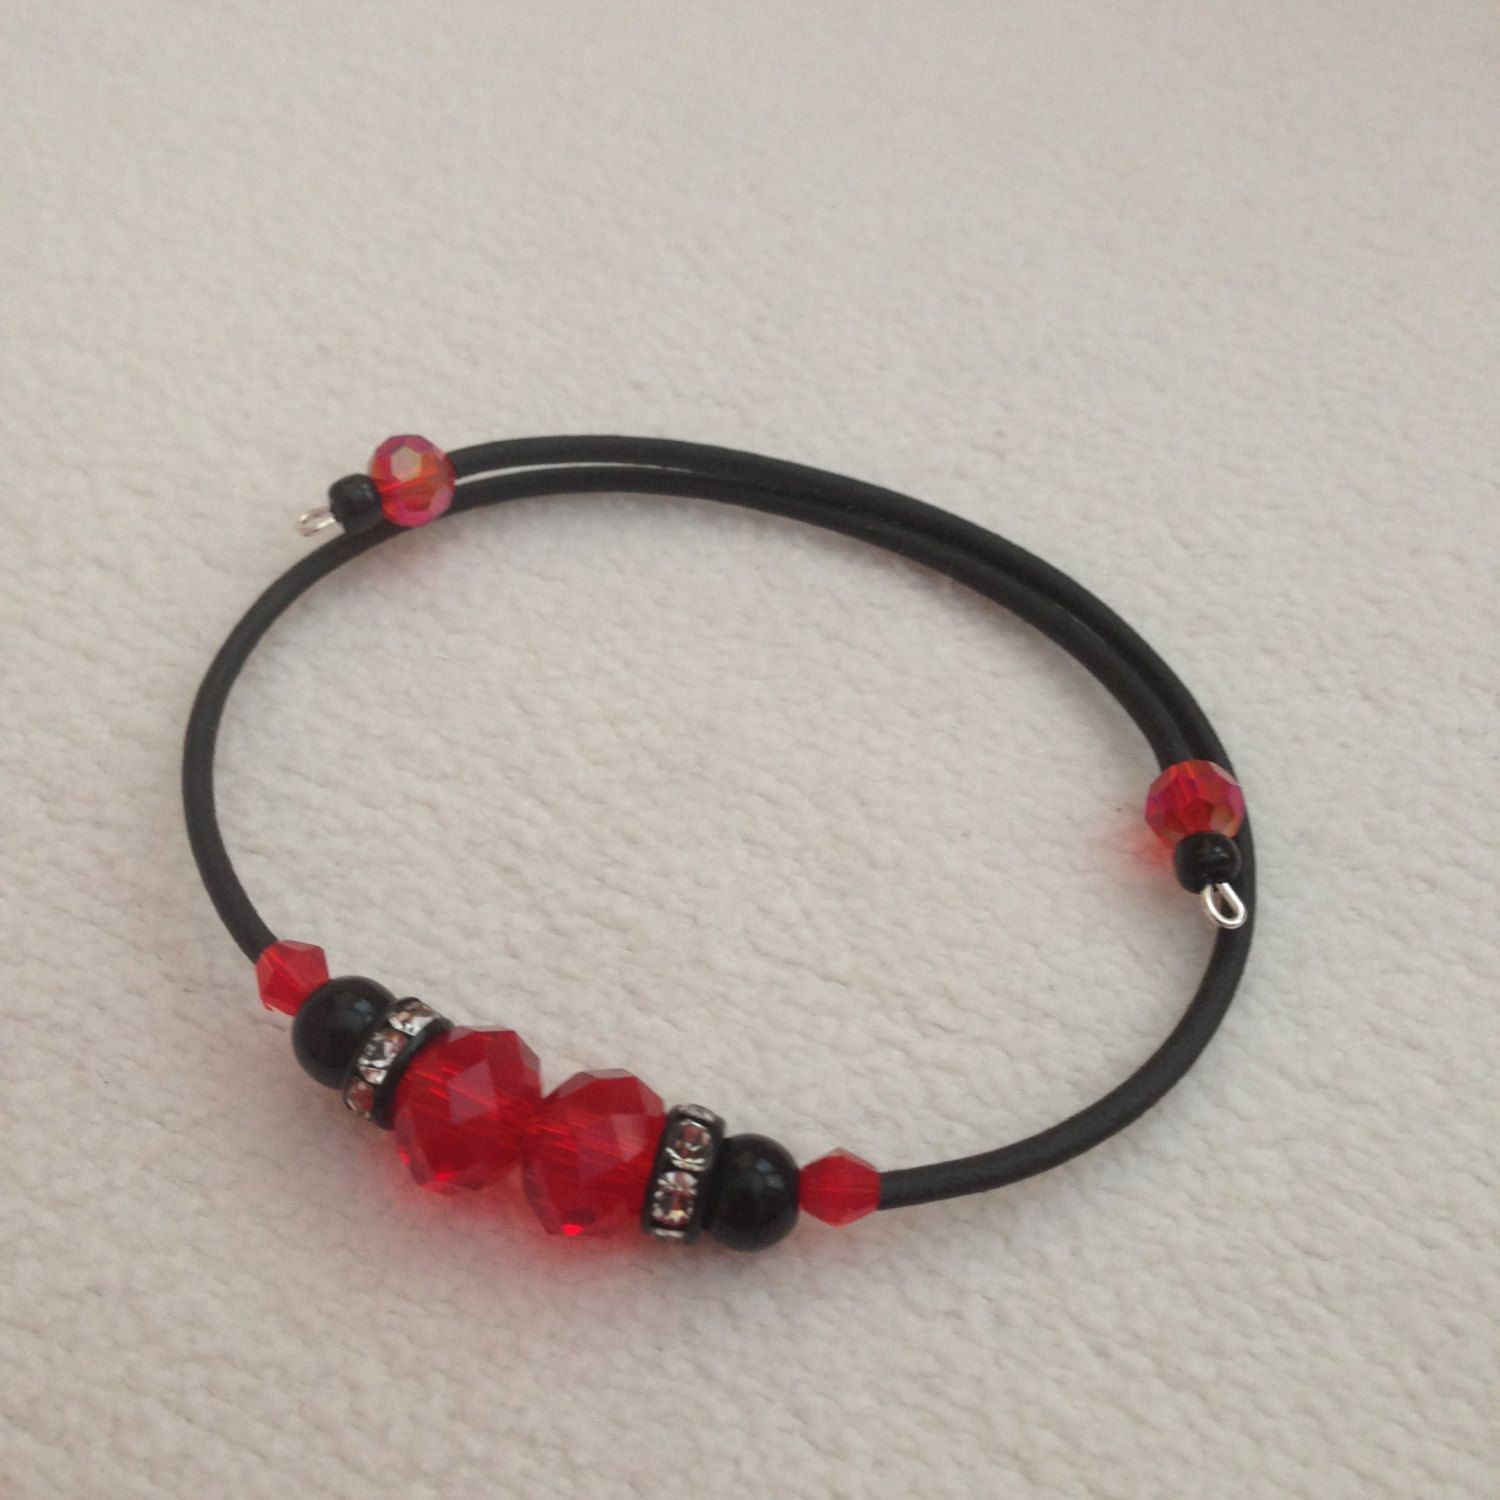 Double Red Crystal Beads bracelet by CCMExpressions on Etsy